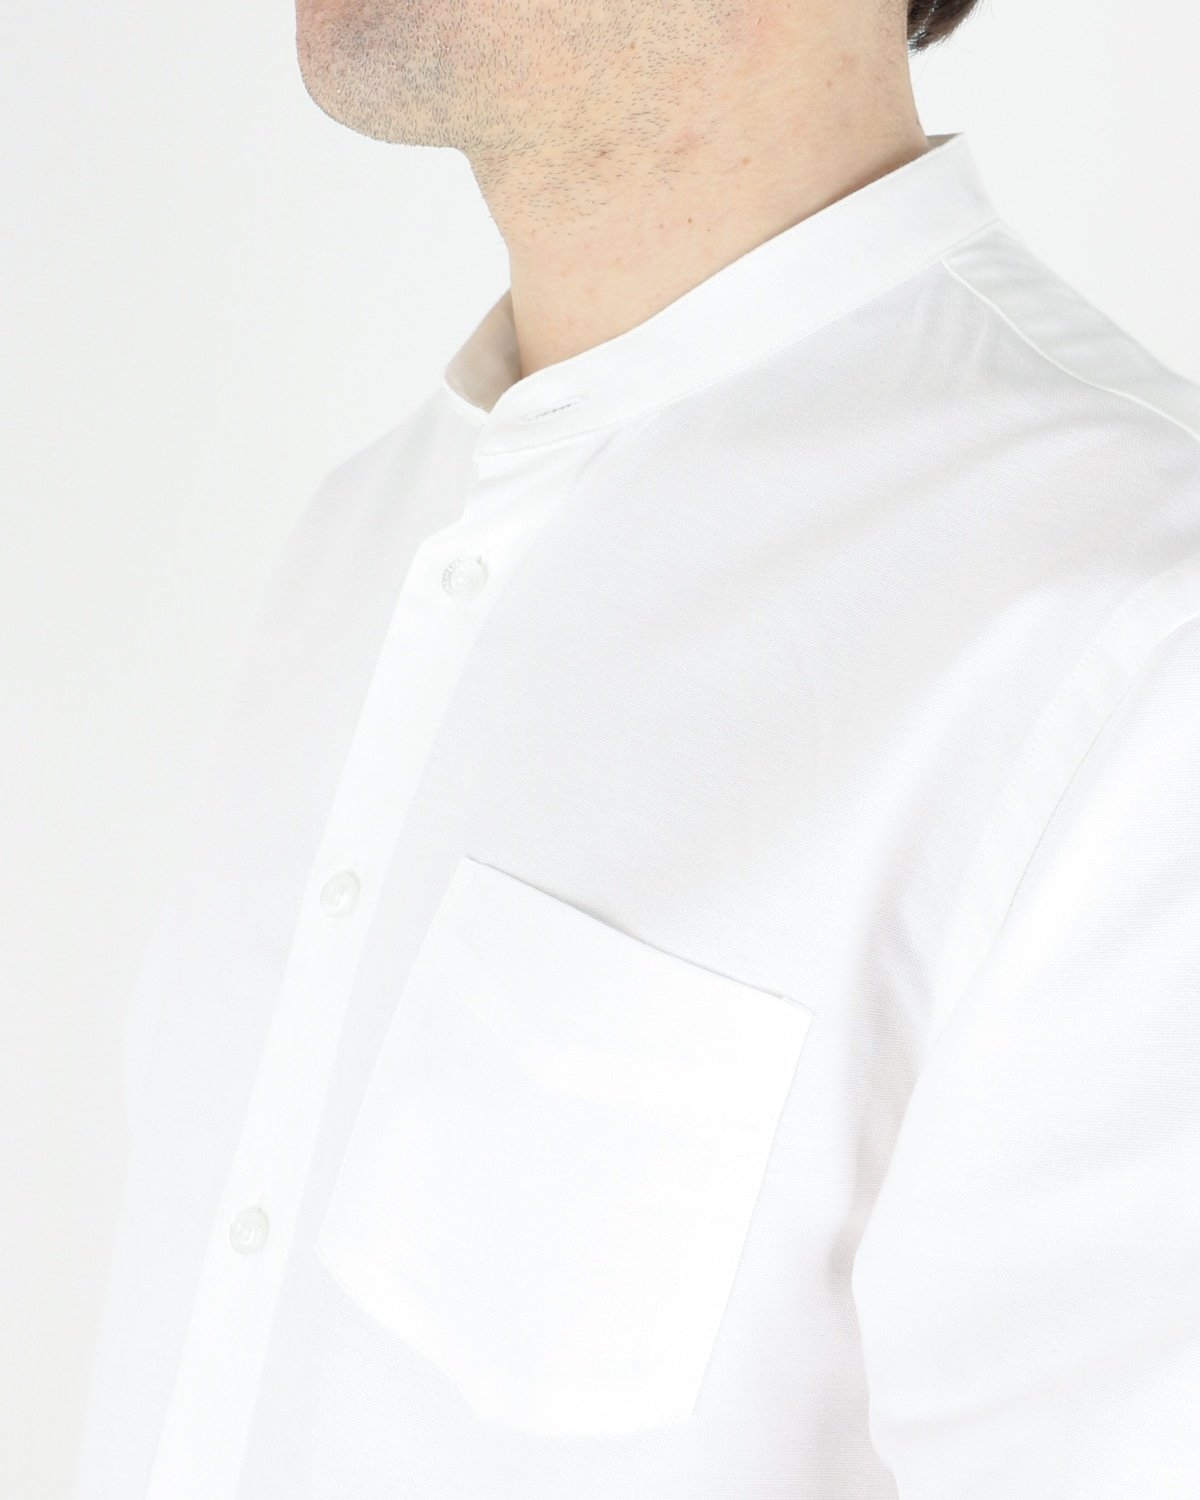 libertine libertine_factory shirt_white_3_4